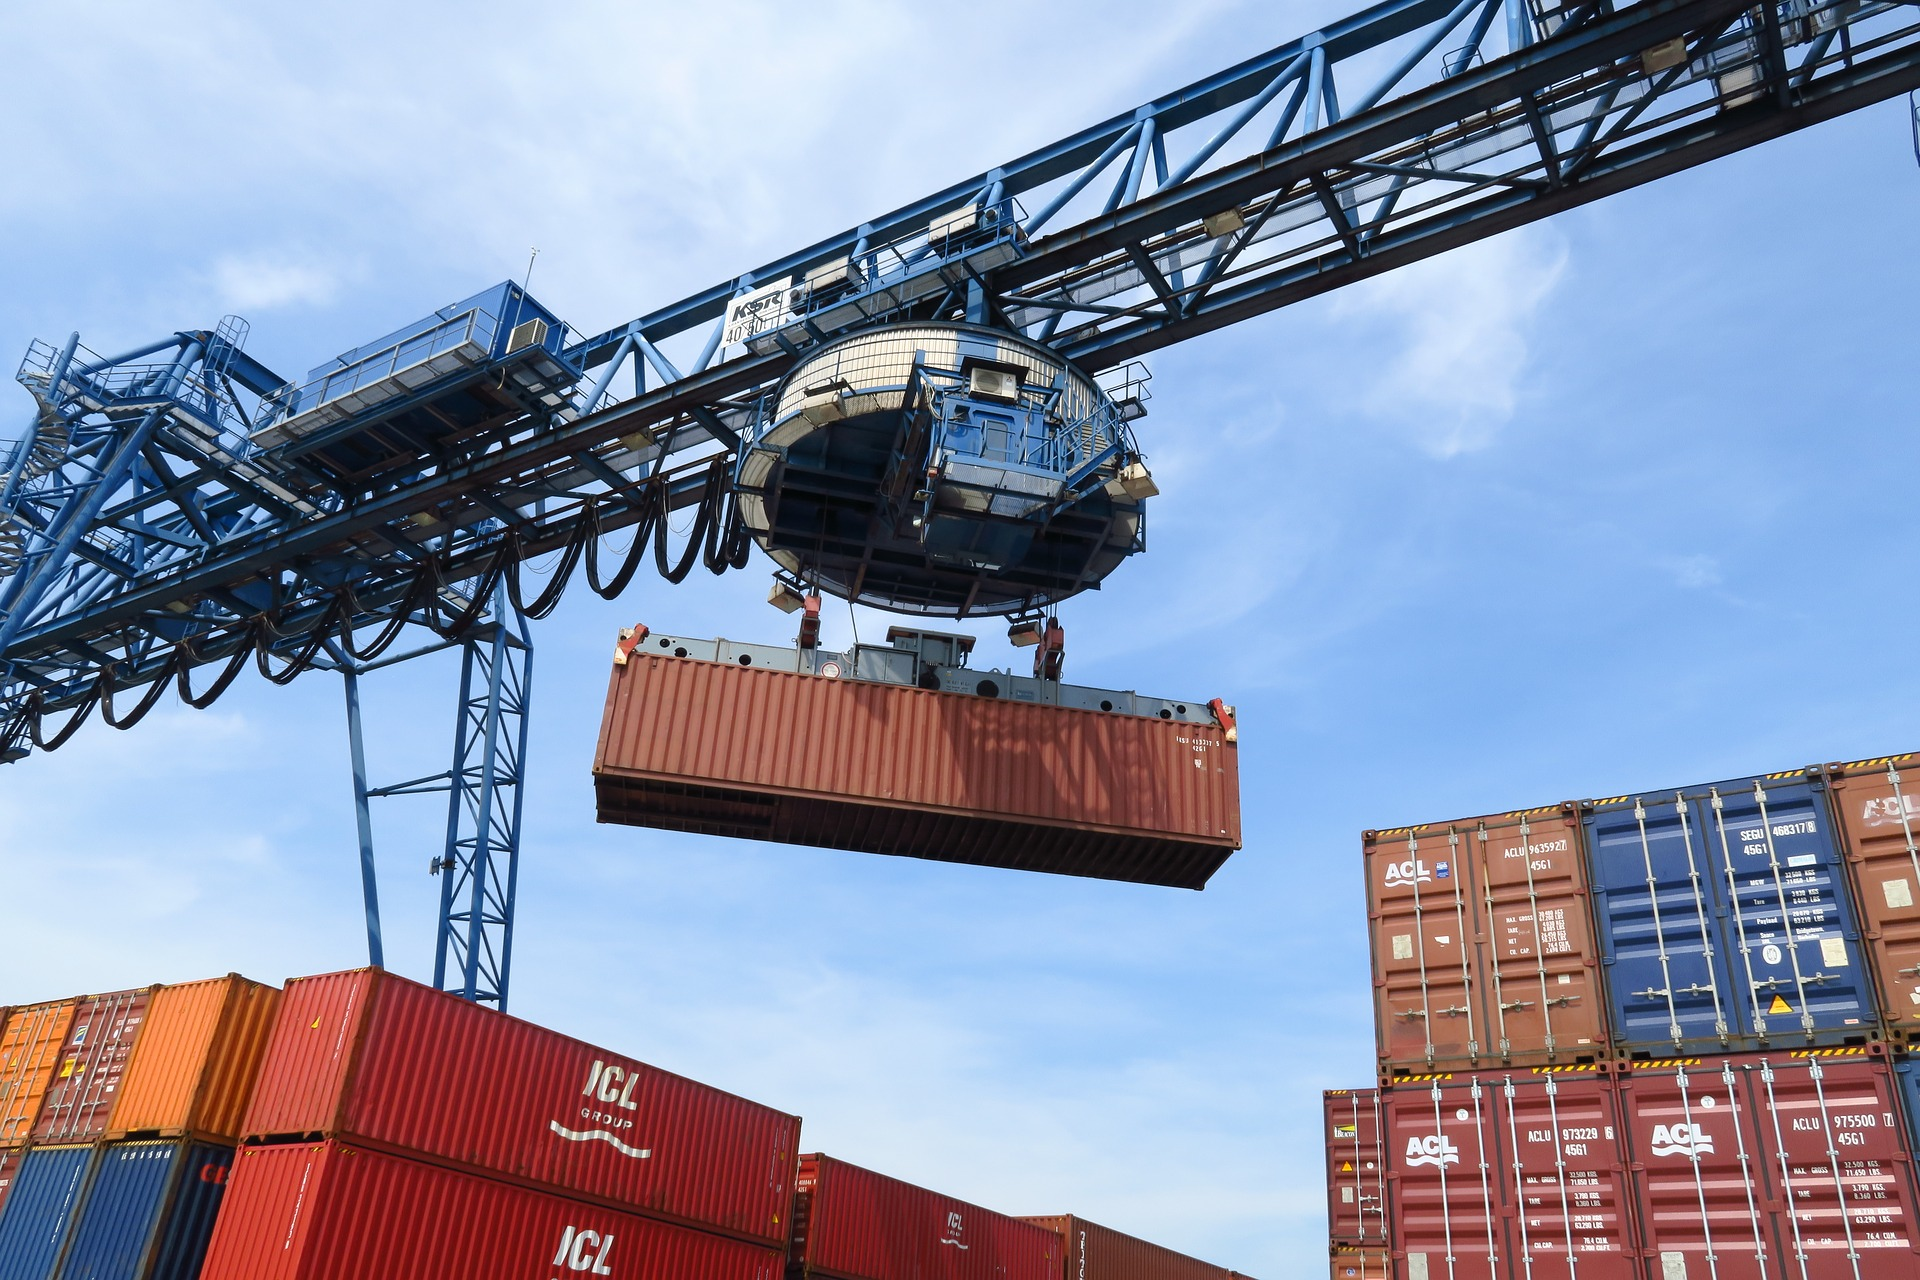 Containerizing Heavy Workloads to Cloud